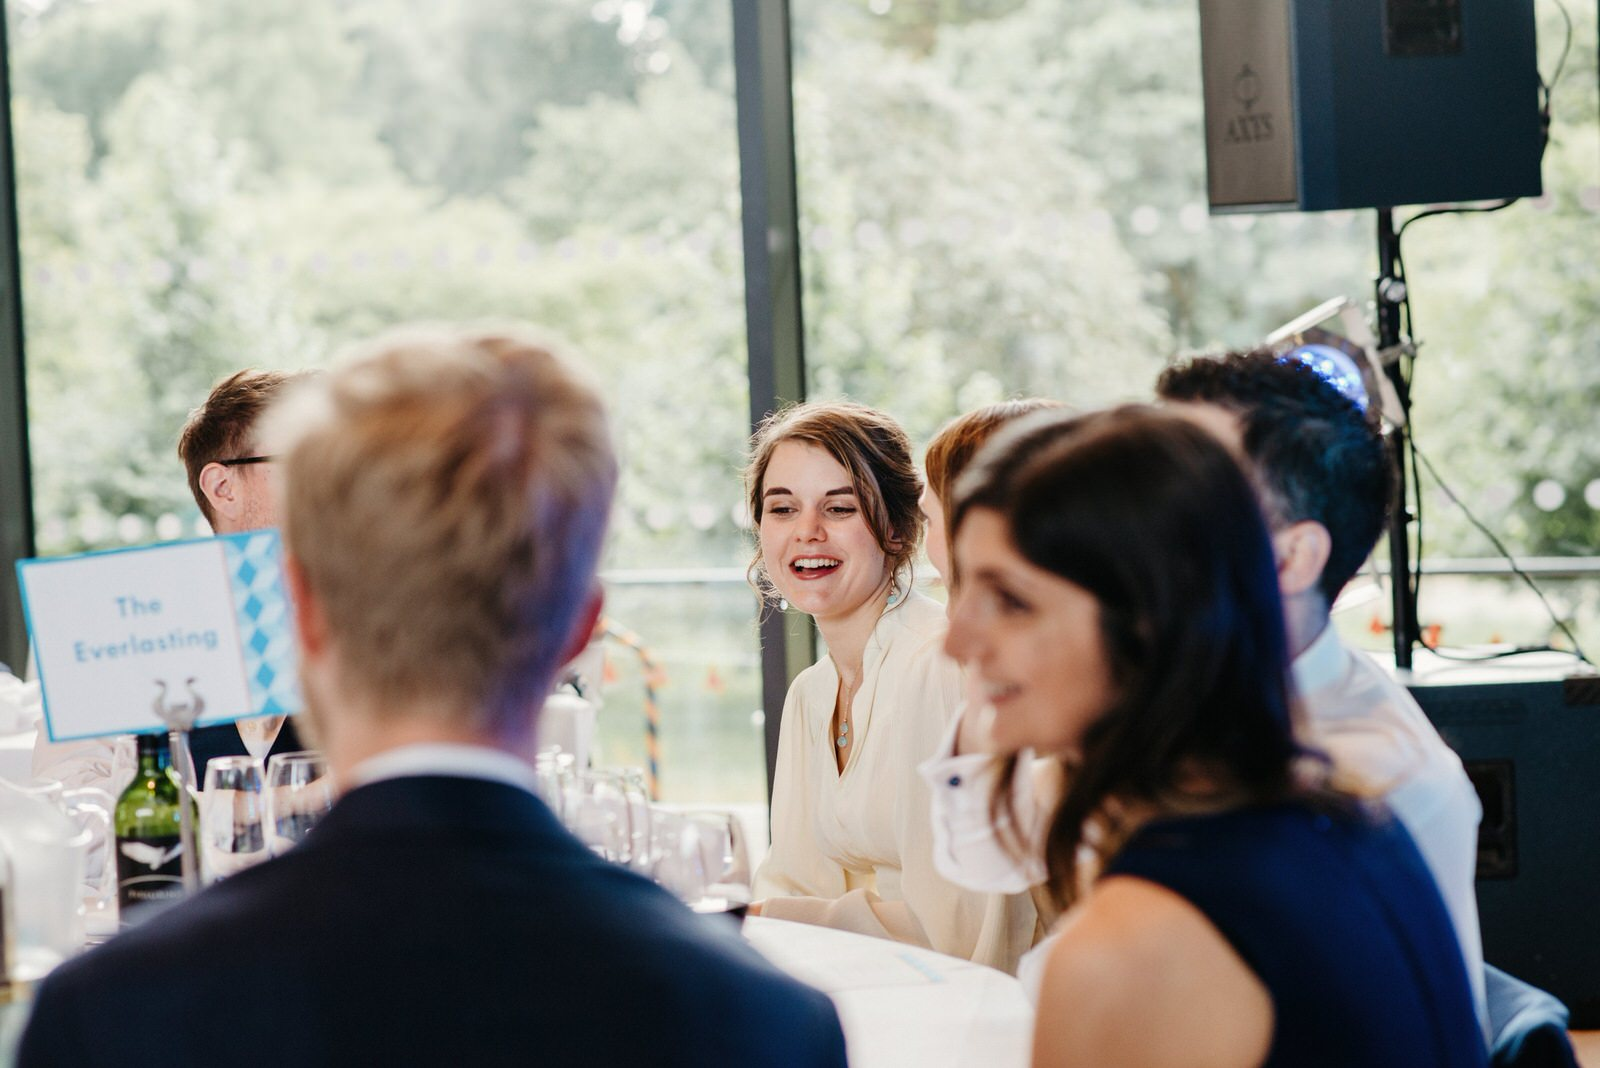 Bride mingling with guests during the wedding breakfast the Royal College of Music and Drama